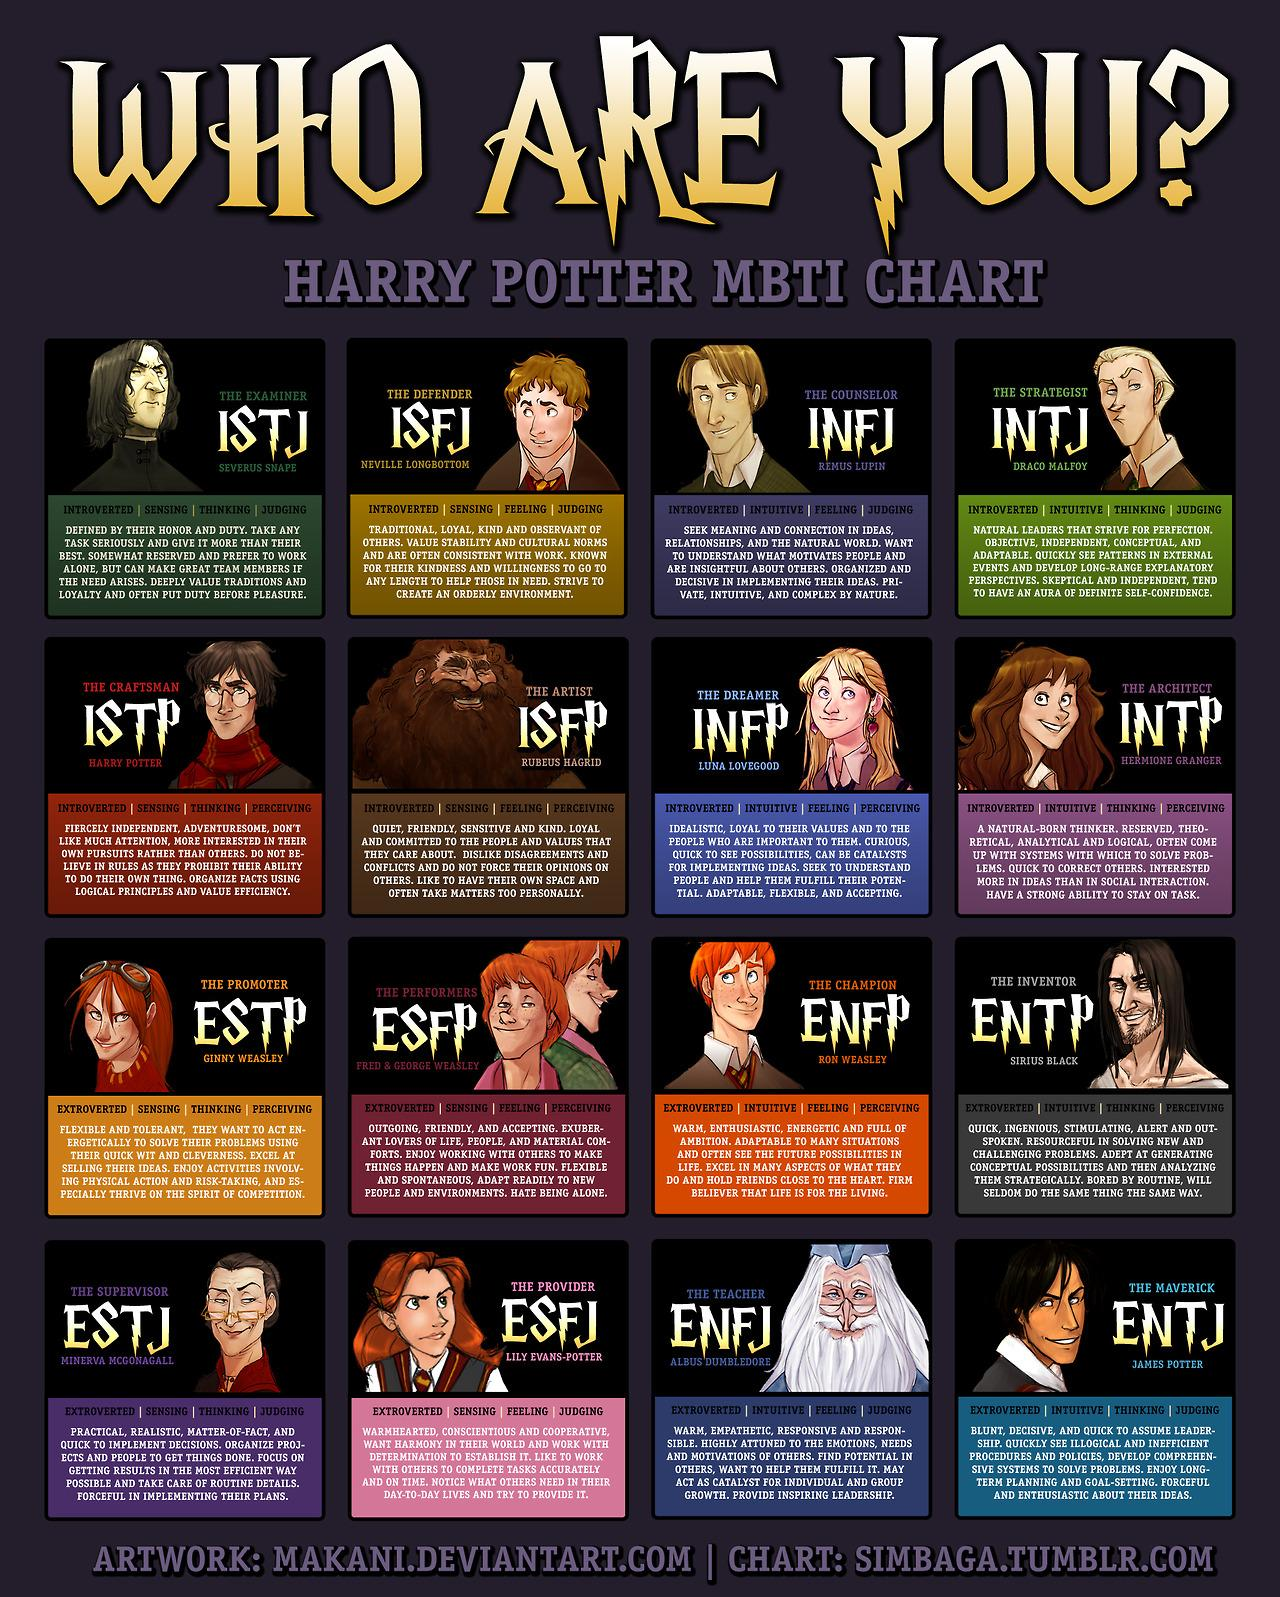 Harry Potter Meyers Briggs